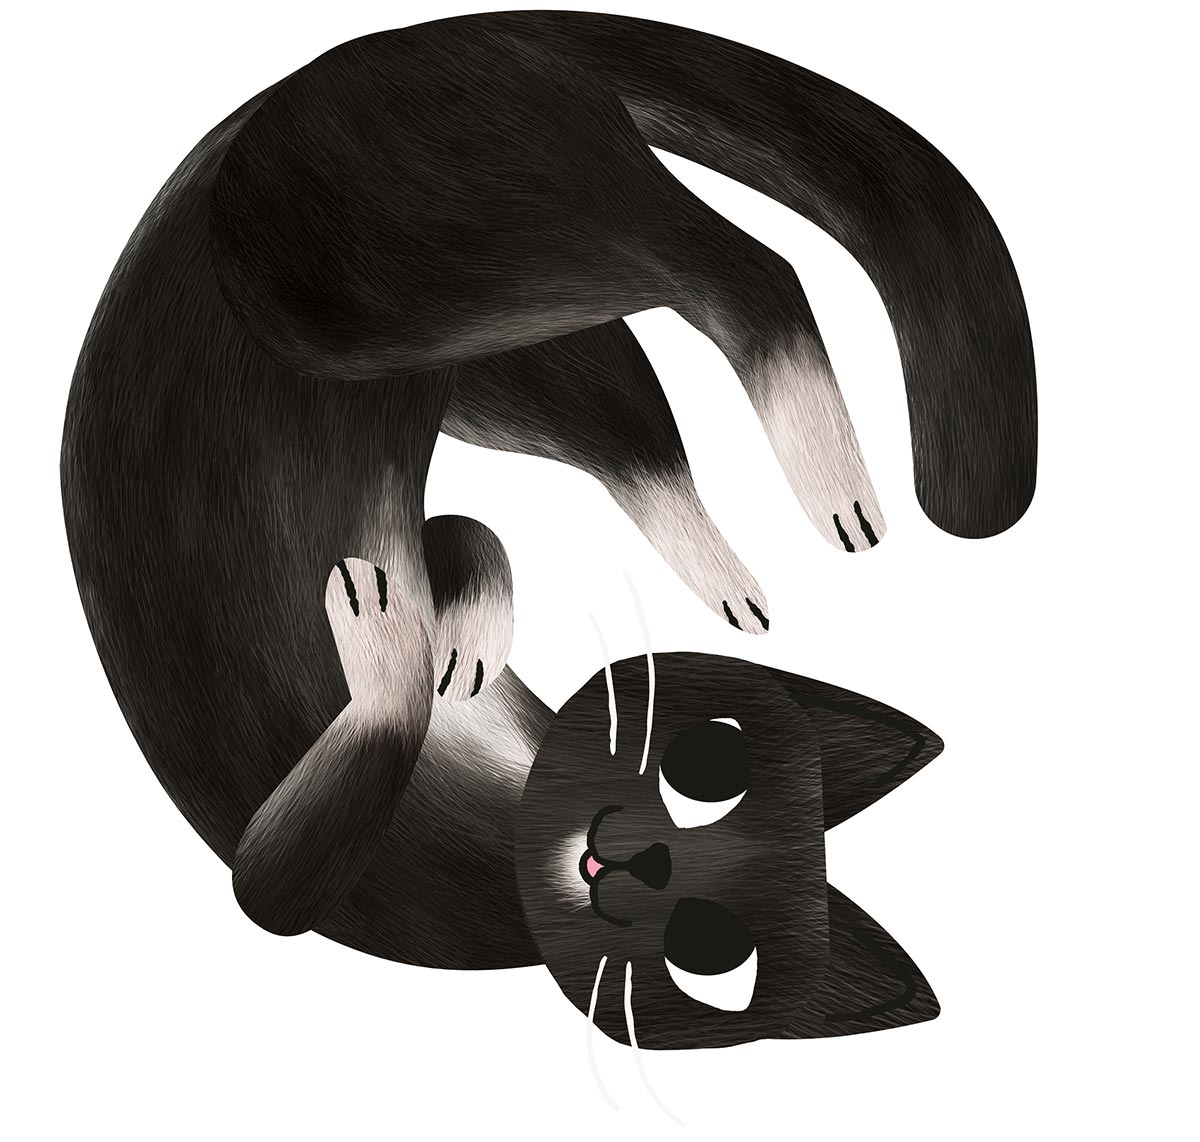 Digital illustration of a cat. - click to view larger image